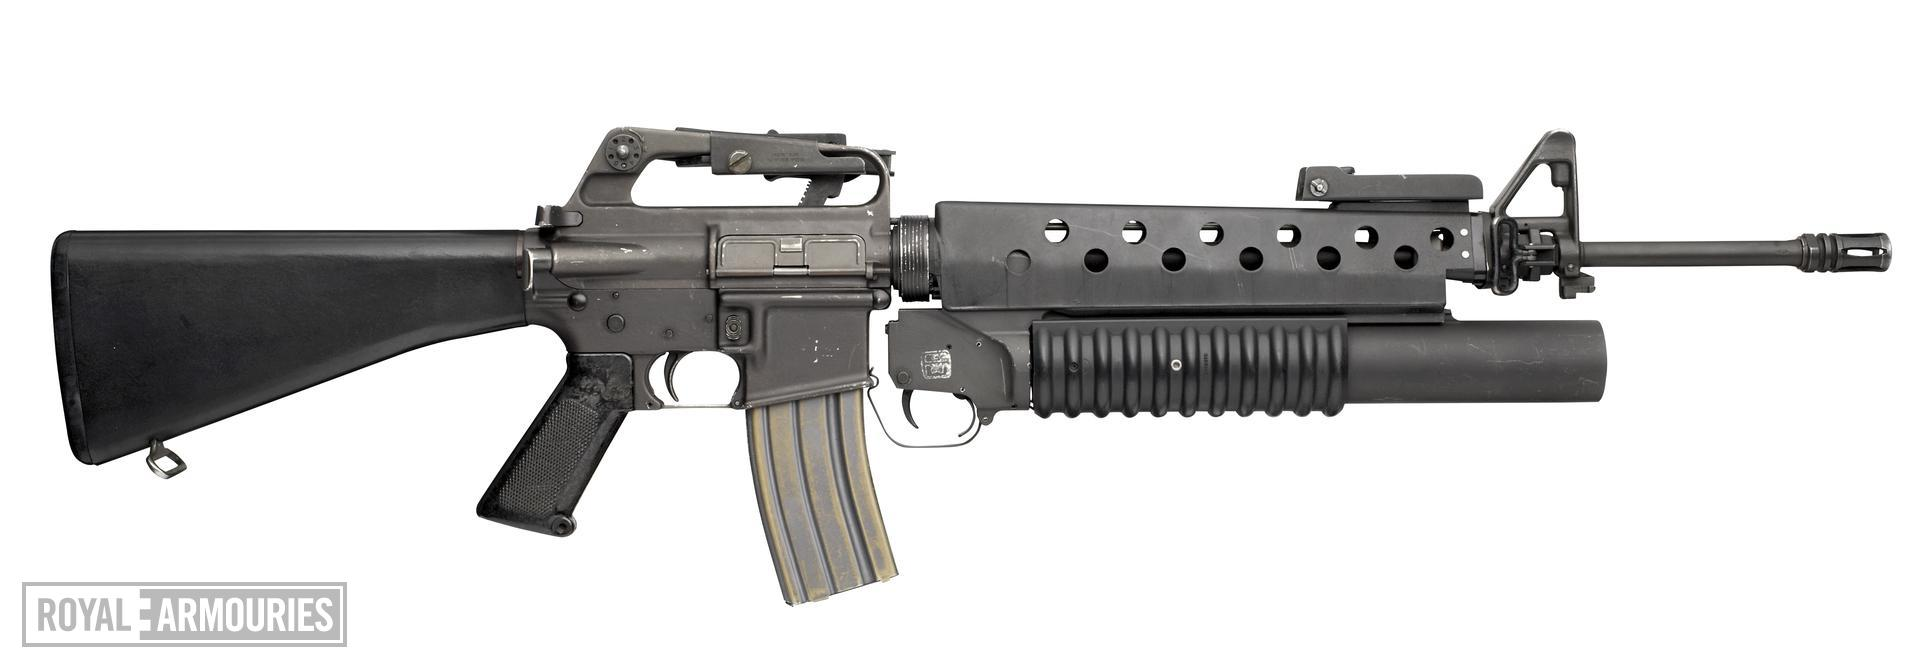 Centrefire breech-loading grenade launcher - M203